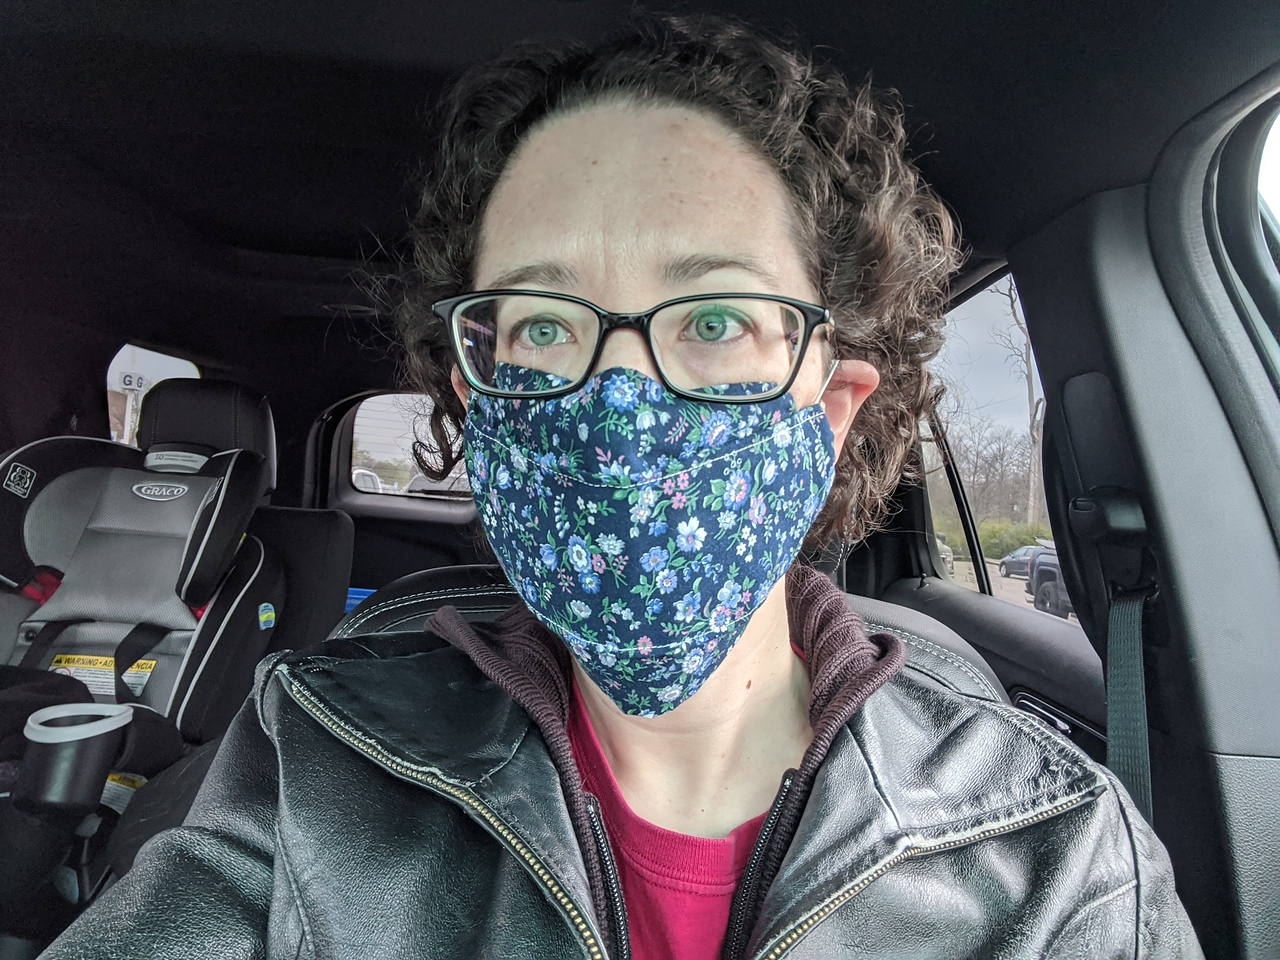 Lisa in mask for Meijer trip, April 19, 2020